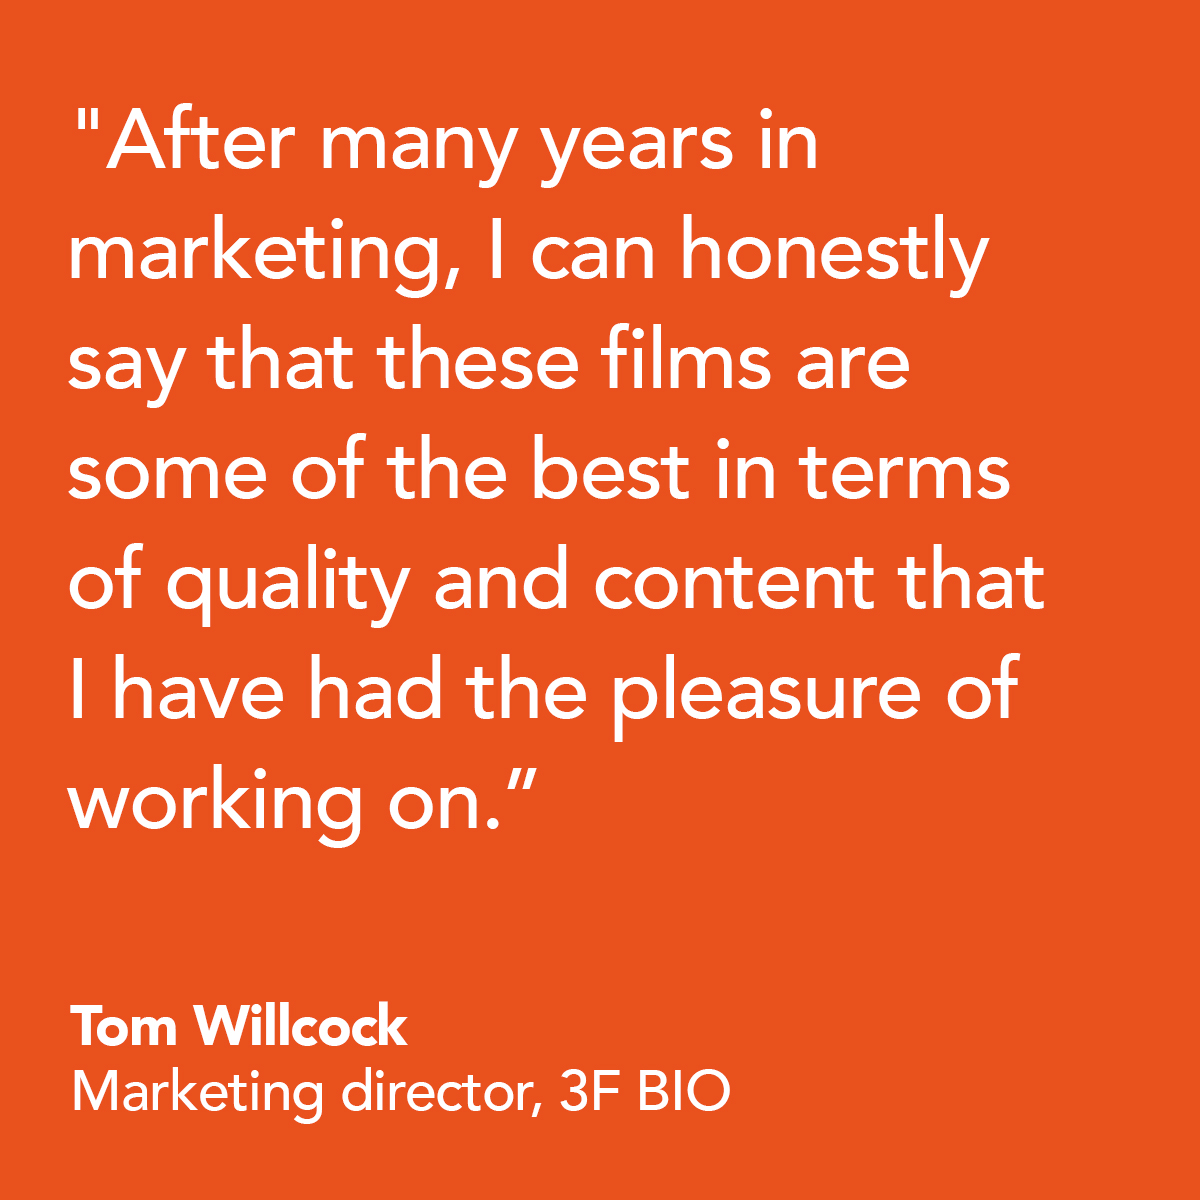 After many years in marketing, I can honestly say that these films are some of the best in terms of quality and content I have had the pleasure of working on. - Tom Wilcock, Marketing Director, 3F BIO